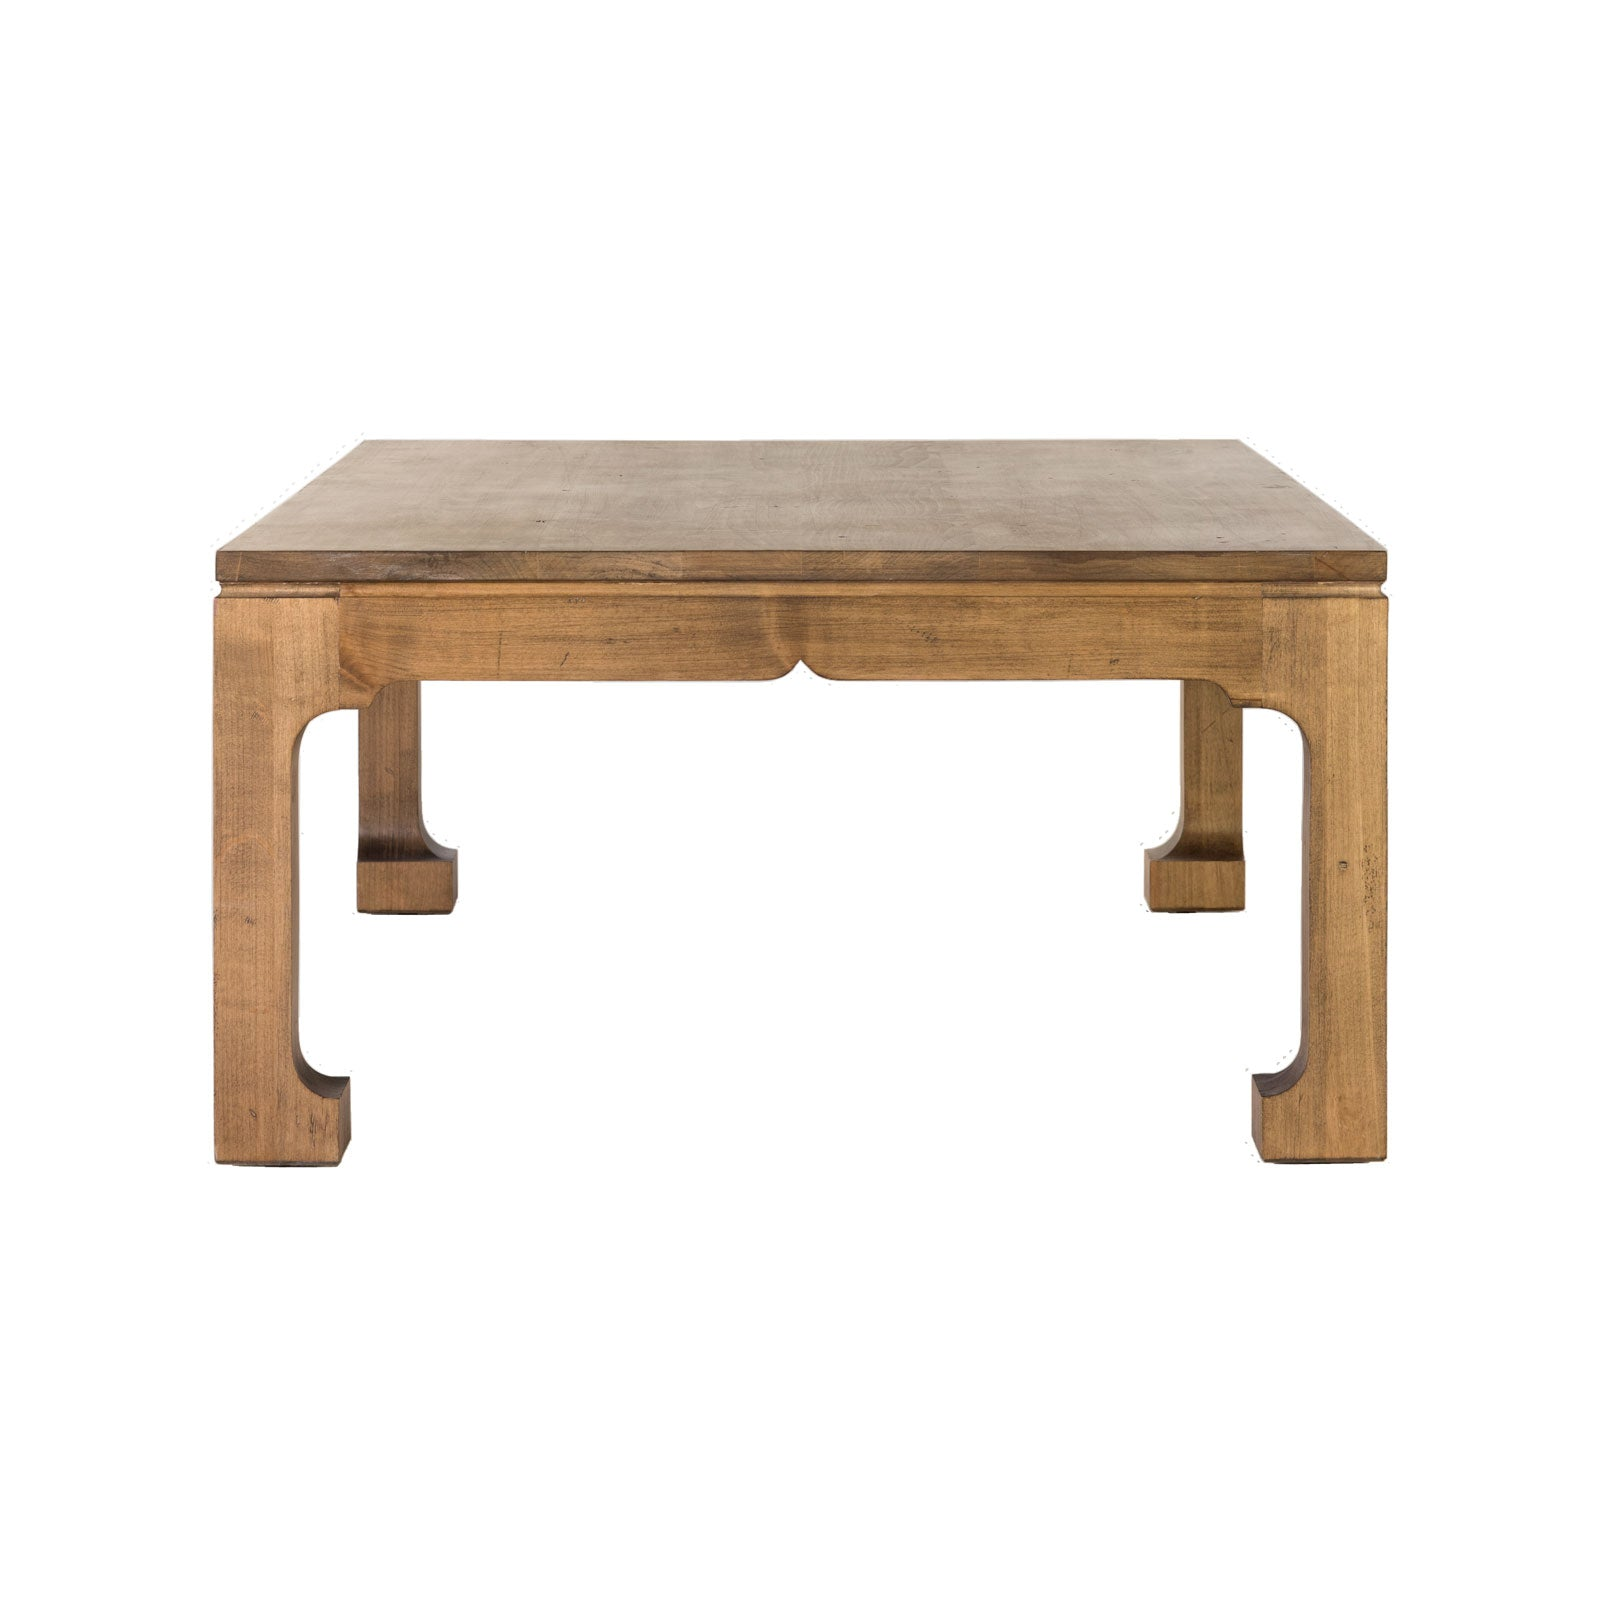 Kailyn Square Coffee Table